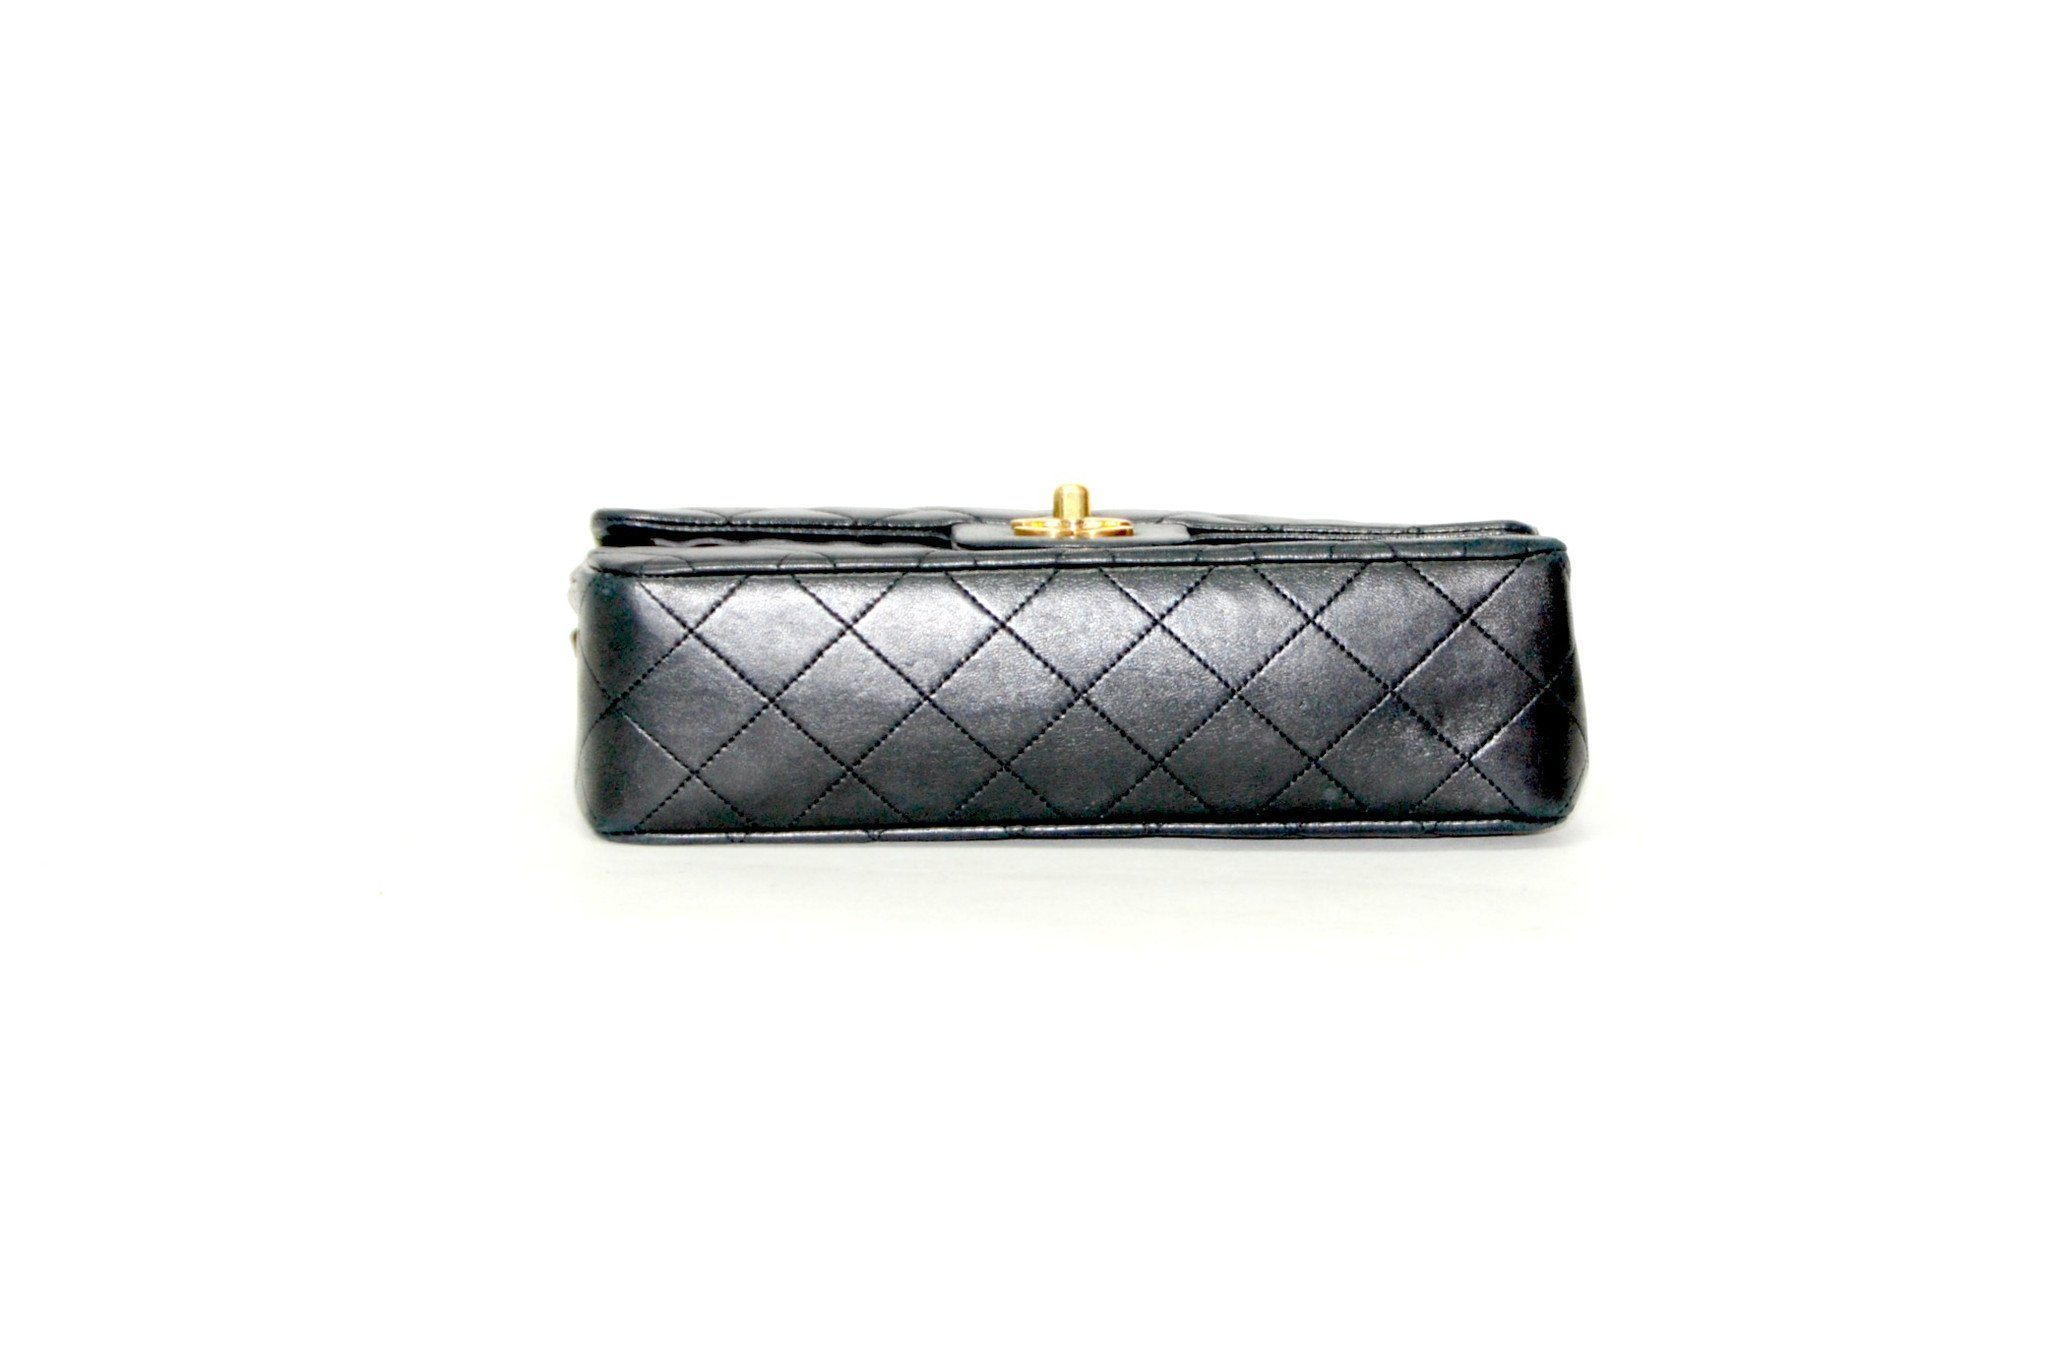 5a1011388fc596 Authentic Vintage Chanel 23cm Bag in Black Calf Leather with Gold Hardware